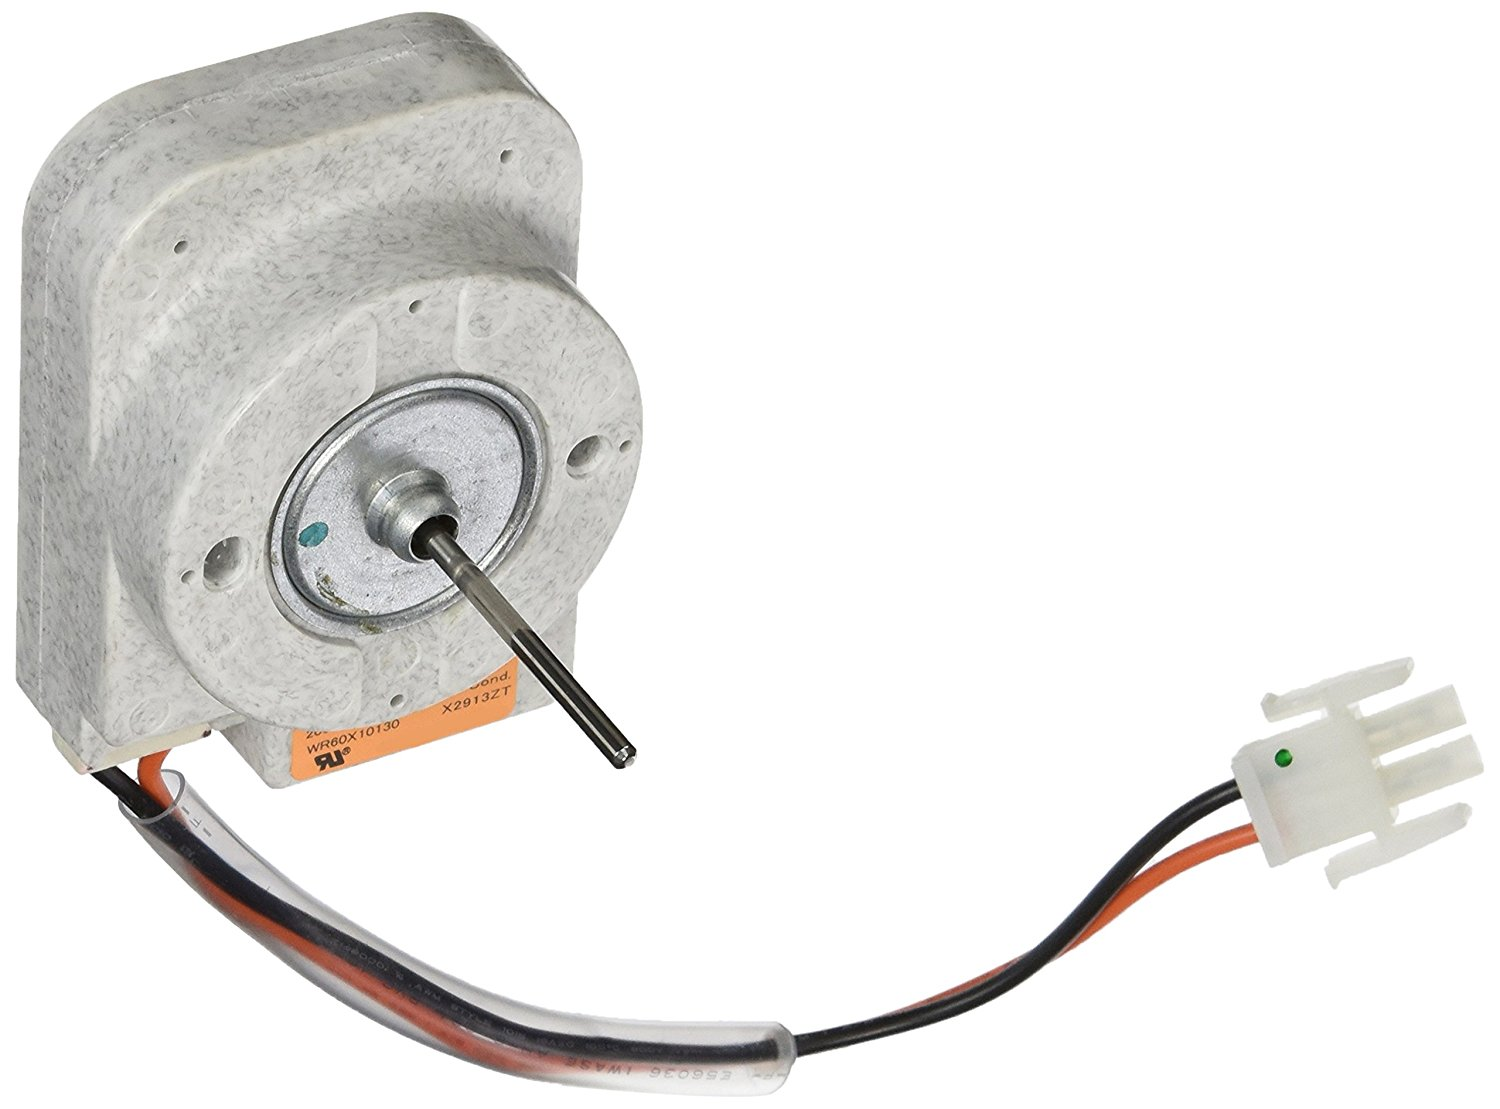 hight resolution of get quotations general electric wr60x10130 condenser fan motor